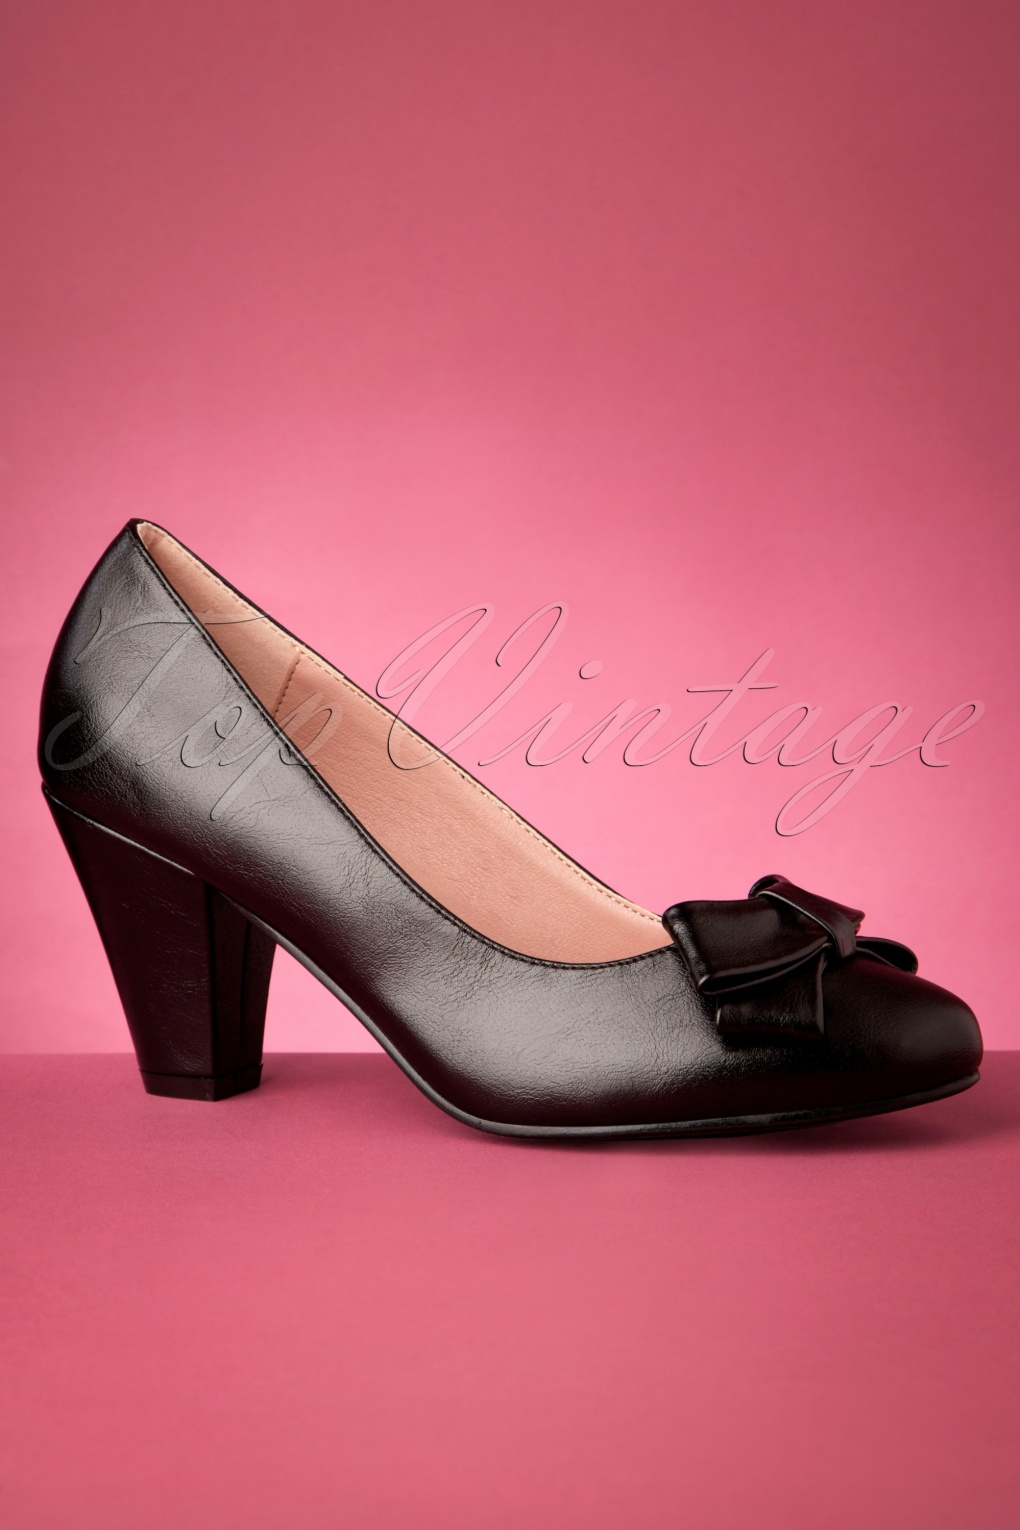 1960s Style Dresses, Clothing, Shoes UK 50s Tracey High Heels in Black £46.34 AT vintagedancer.com